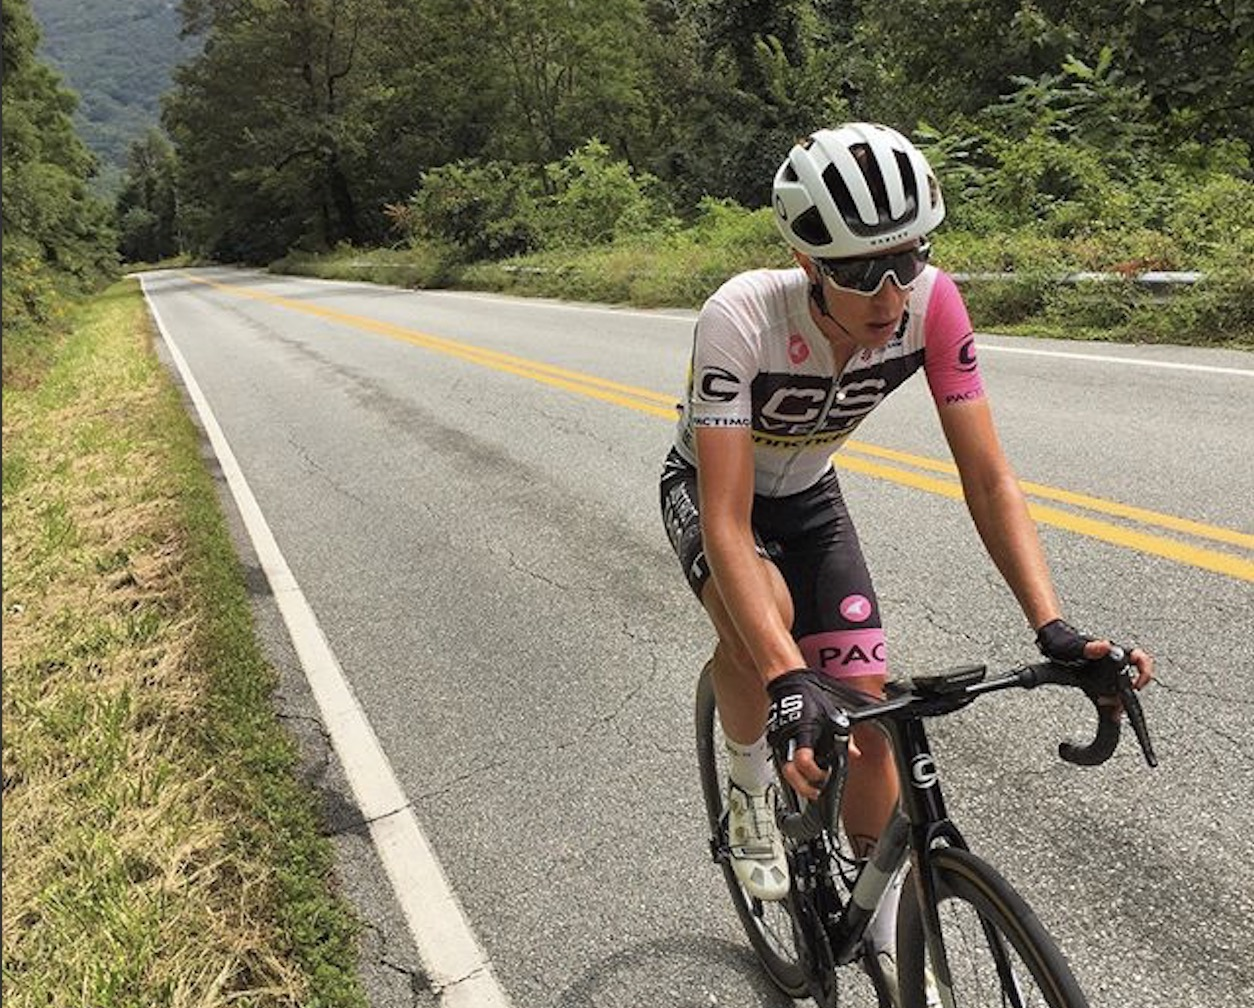 New Everesting World record set under 7 hours by Sean Gardner